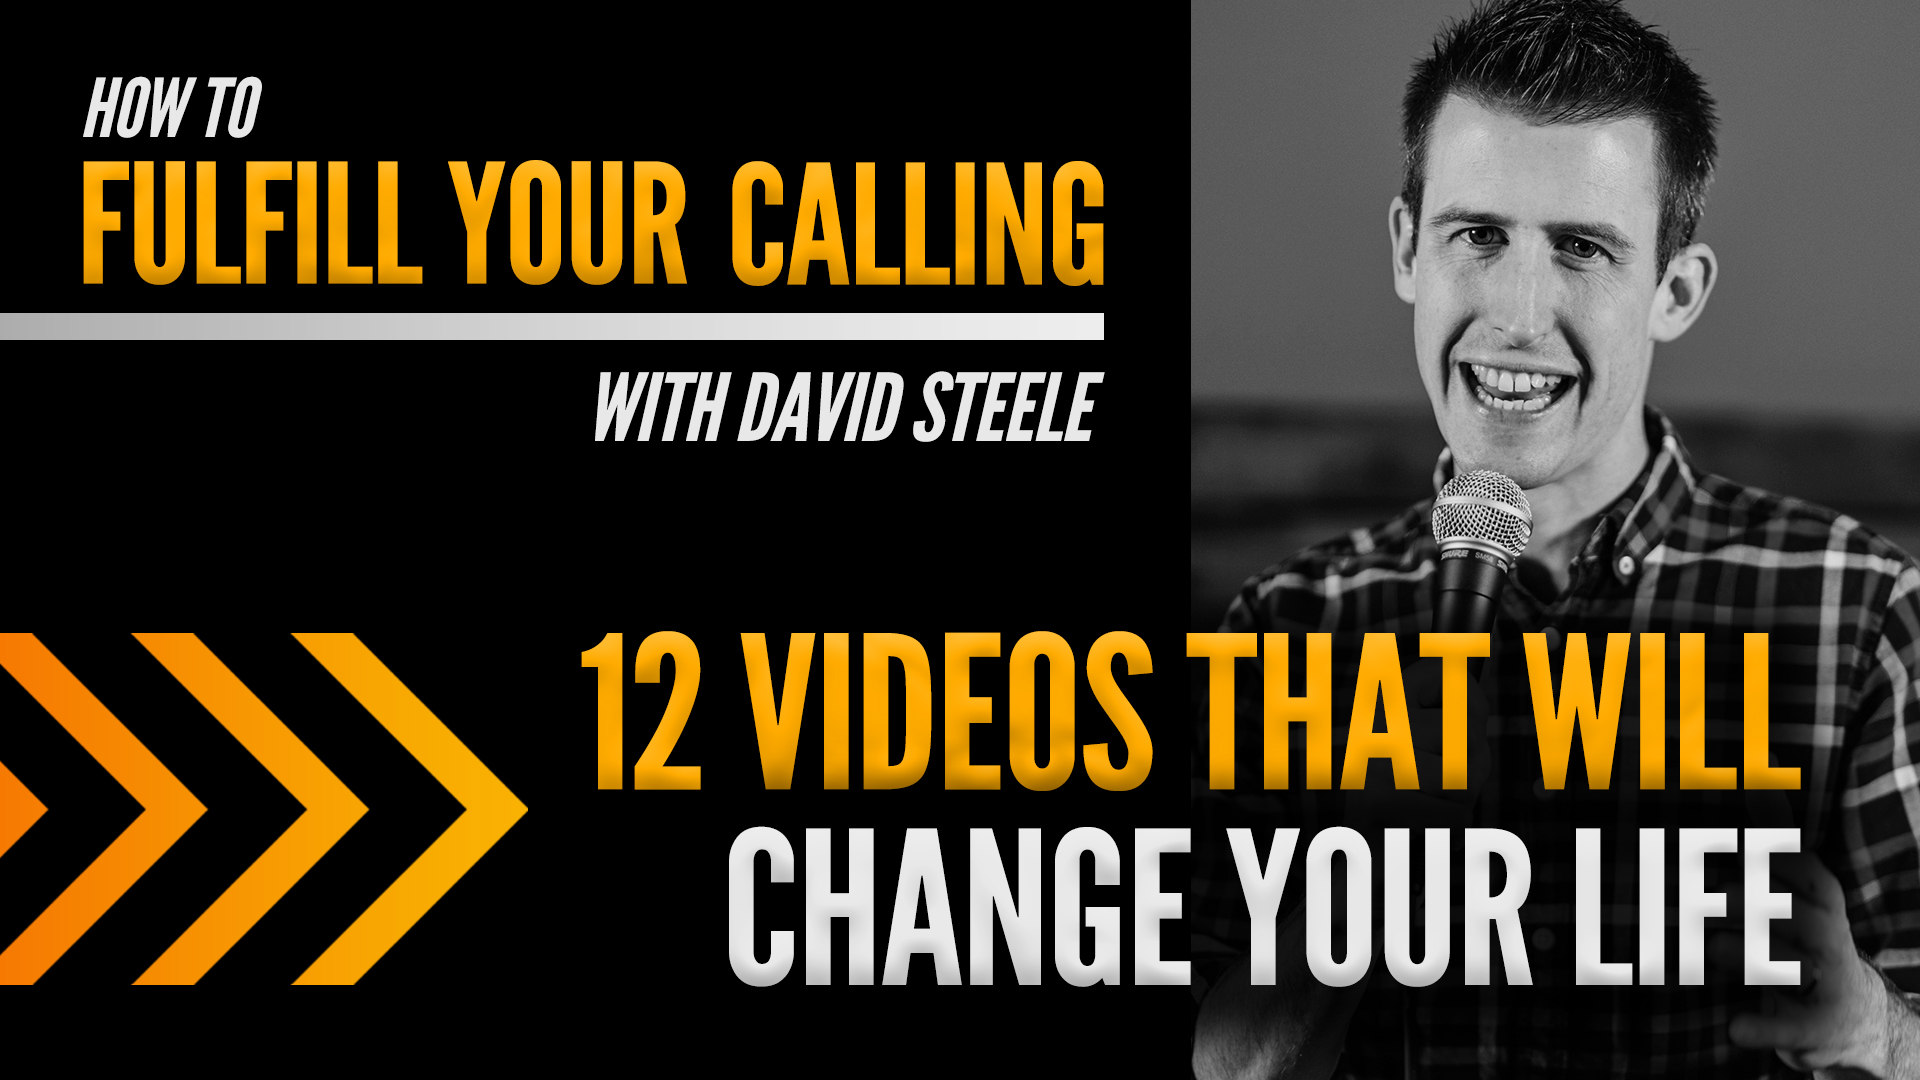 Fulfill your calling with David Steele - 12 videos that will change your life